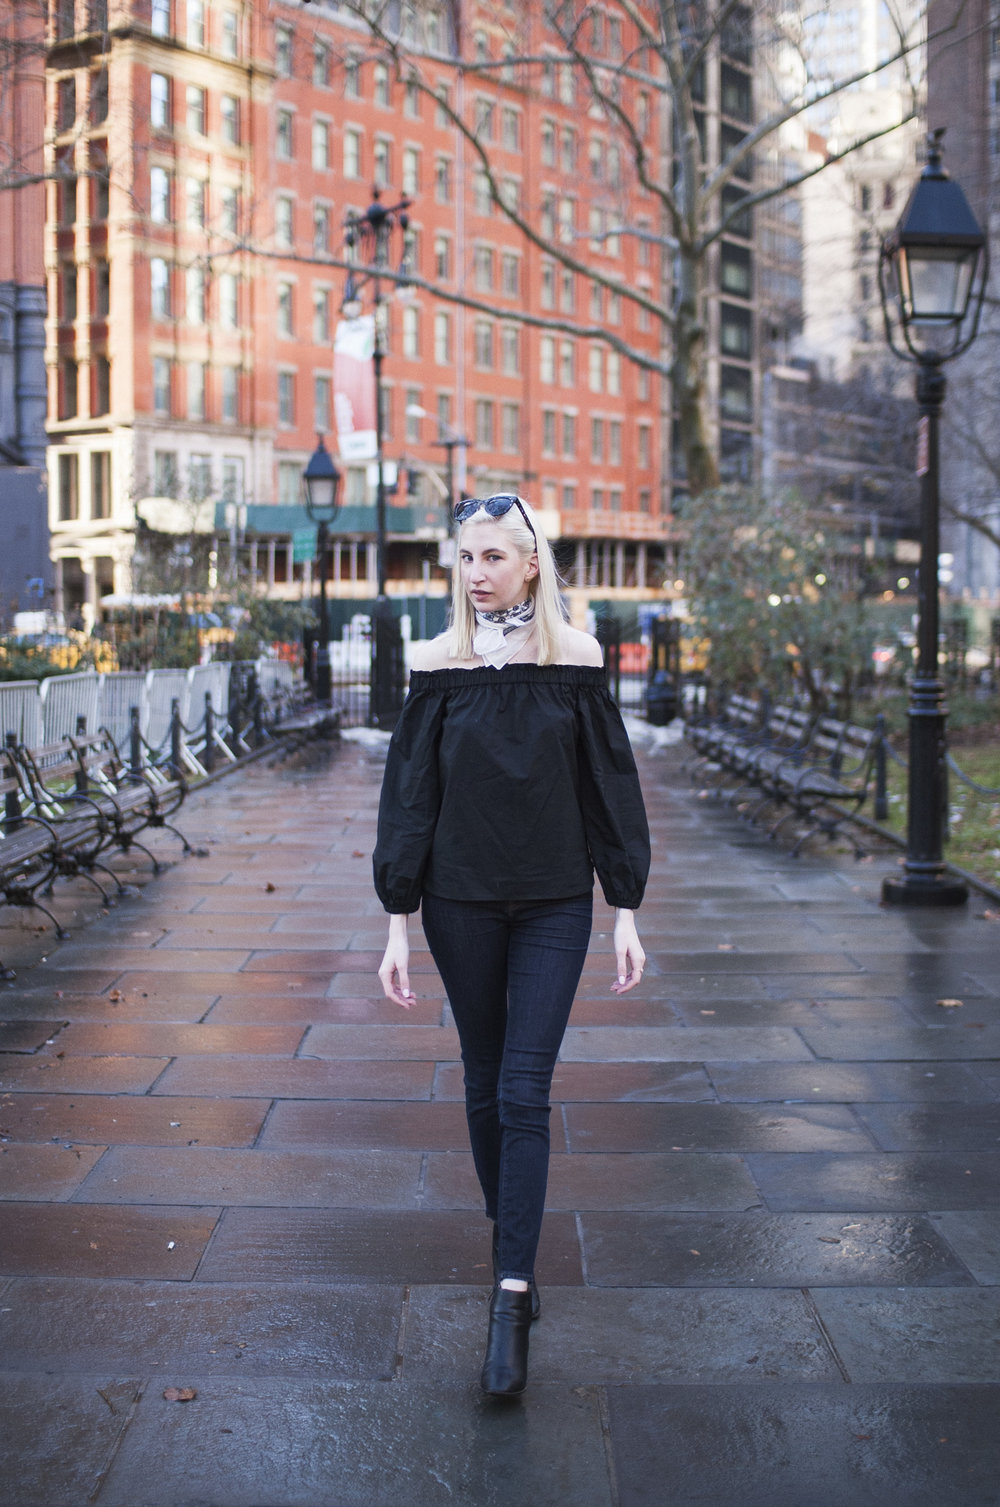 J.Crew black longsleeve off the shoulder top, lookout high rise jeans, black block heel ankle boots, white bandana neck scarf, ear crawlers from Rocksbox